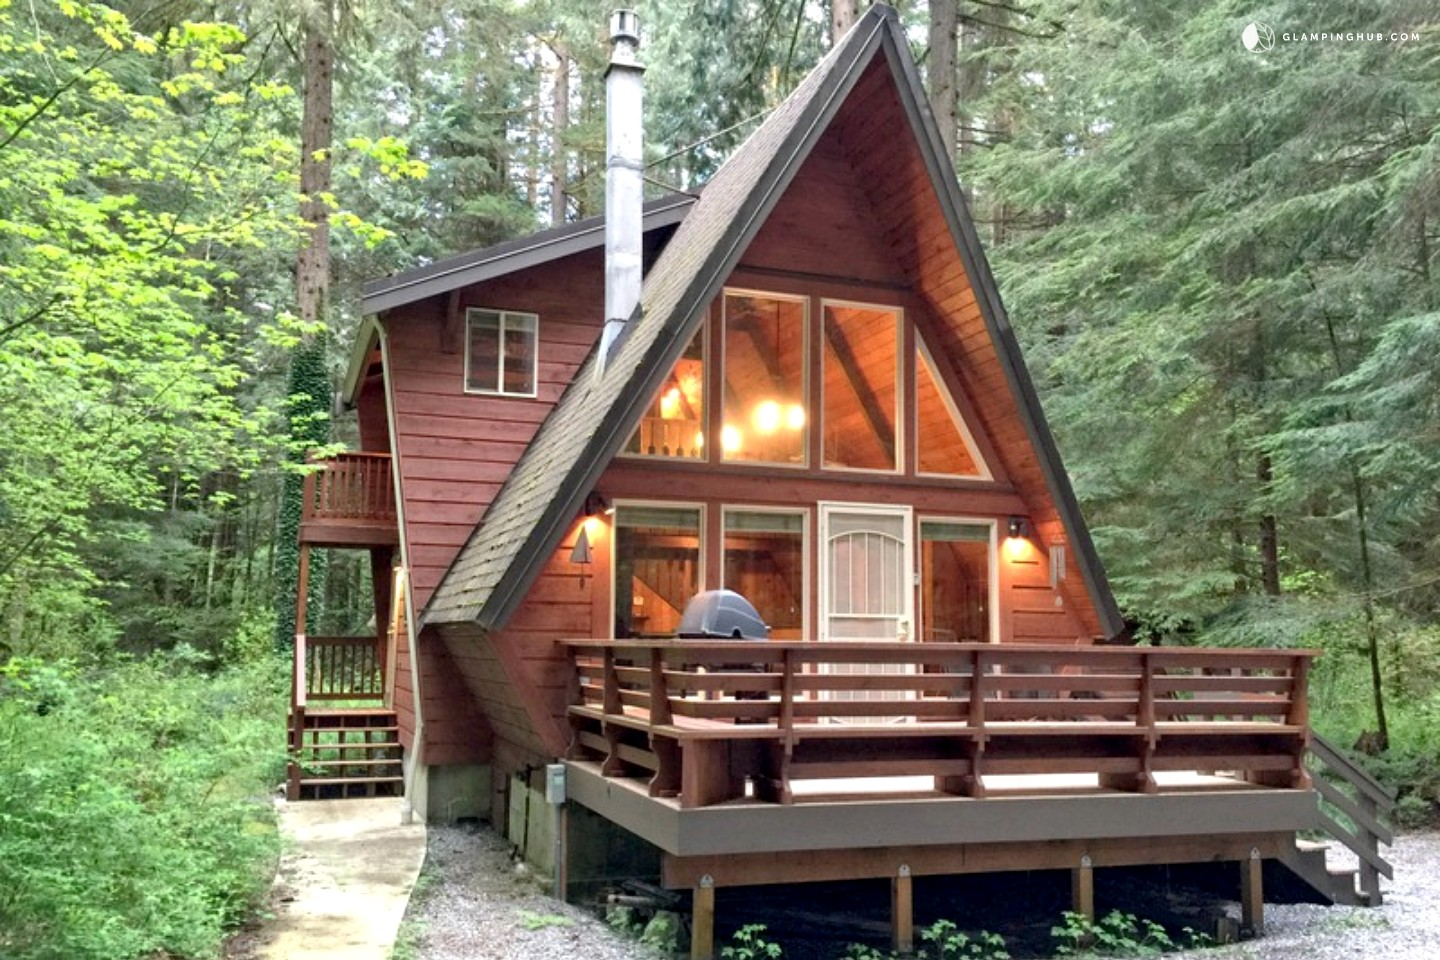 Two Bedroom Houses For Rent Unique A Frame Cabin Rental Near Vancouver